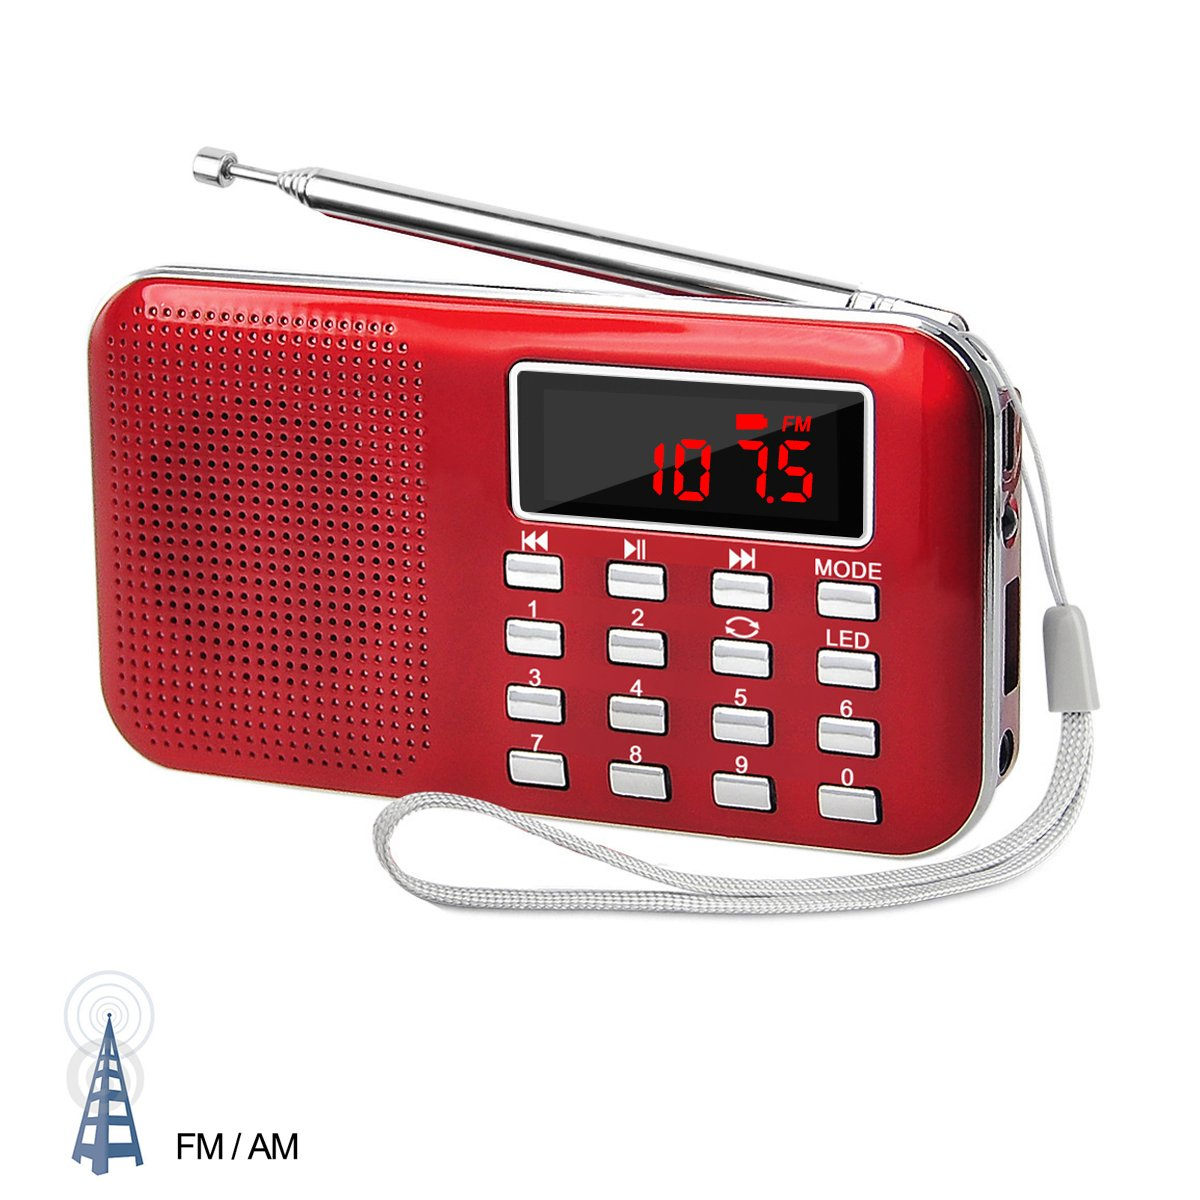 LEFON Mini Digital AM FM Radio Media Speaker MP3 Music Player Support TF Card / USB Disk with LED Screen Display and Emergency Flashlight Function ( Red --Upgraded Version )